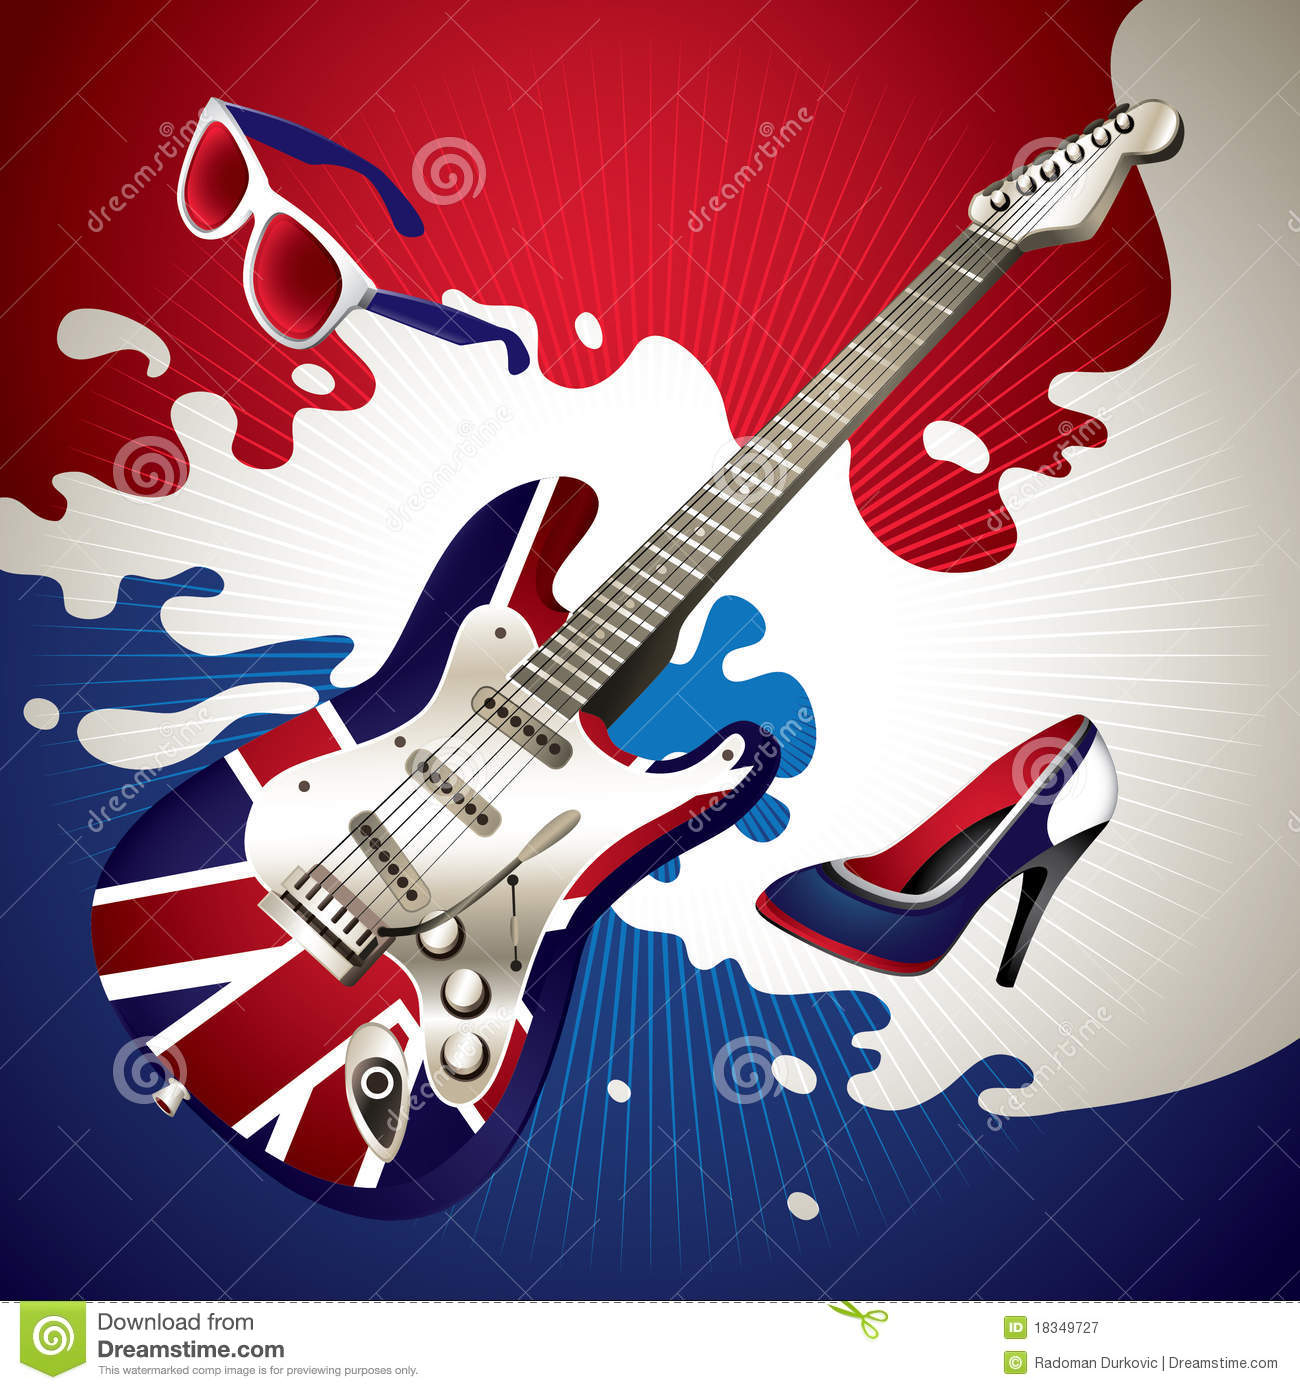 Stylish Electric Guitar. Royalty Free Stock Photography